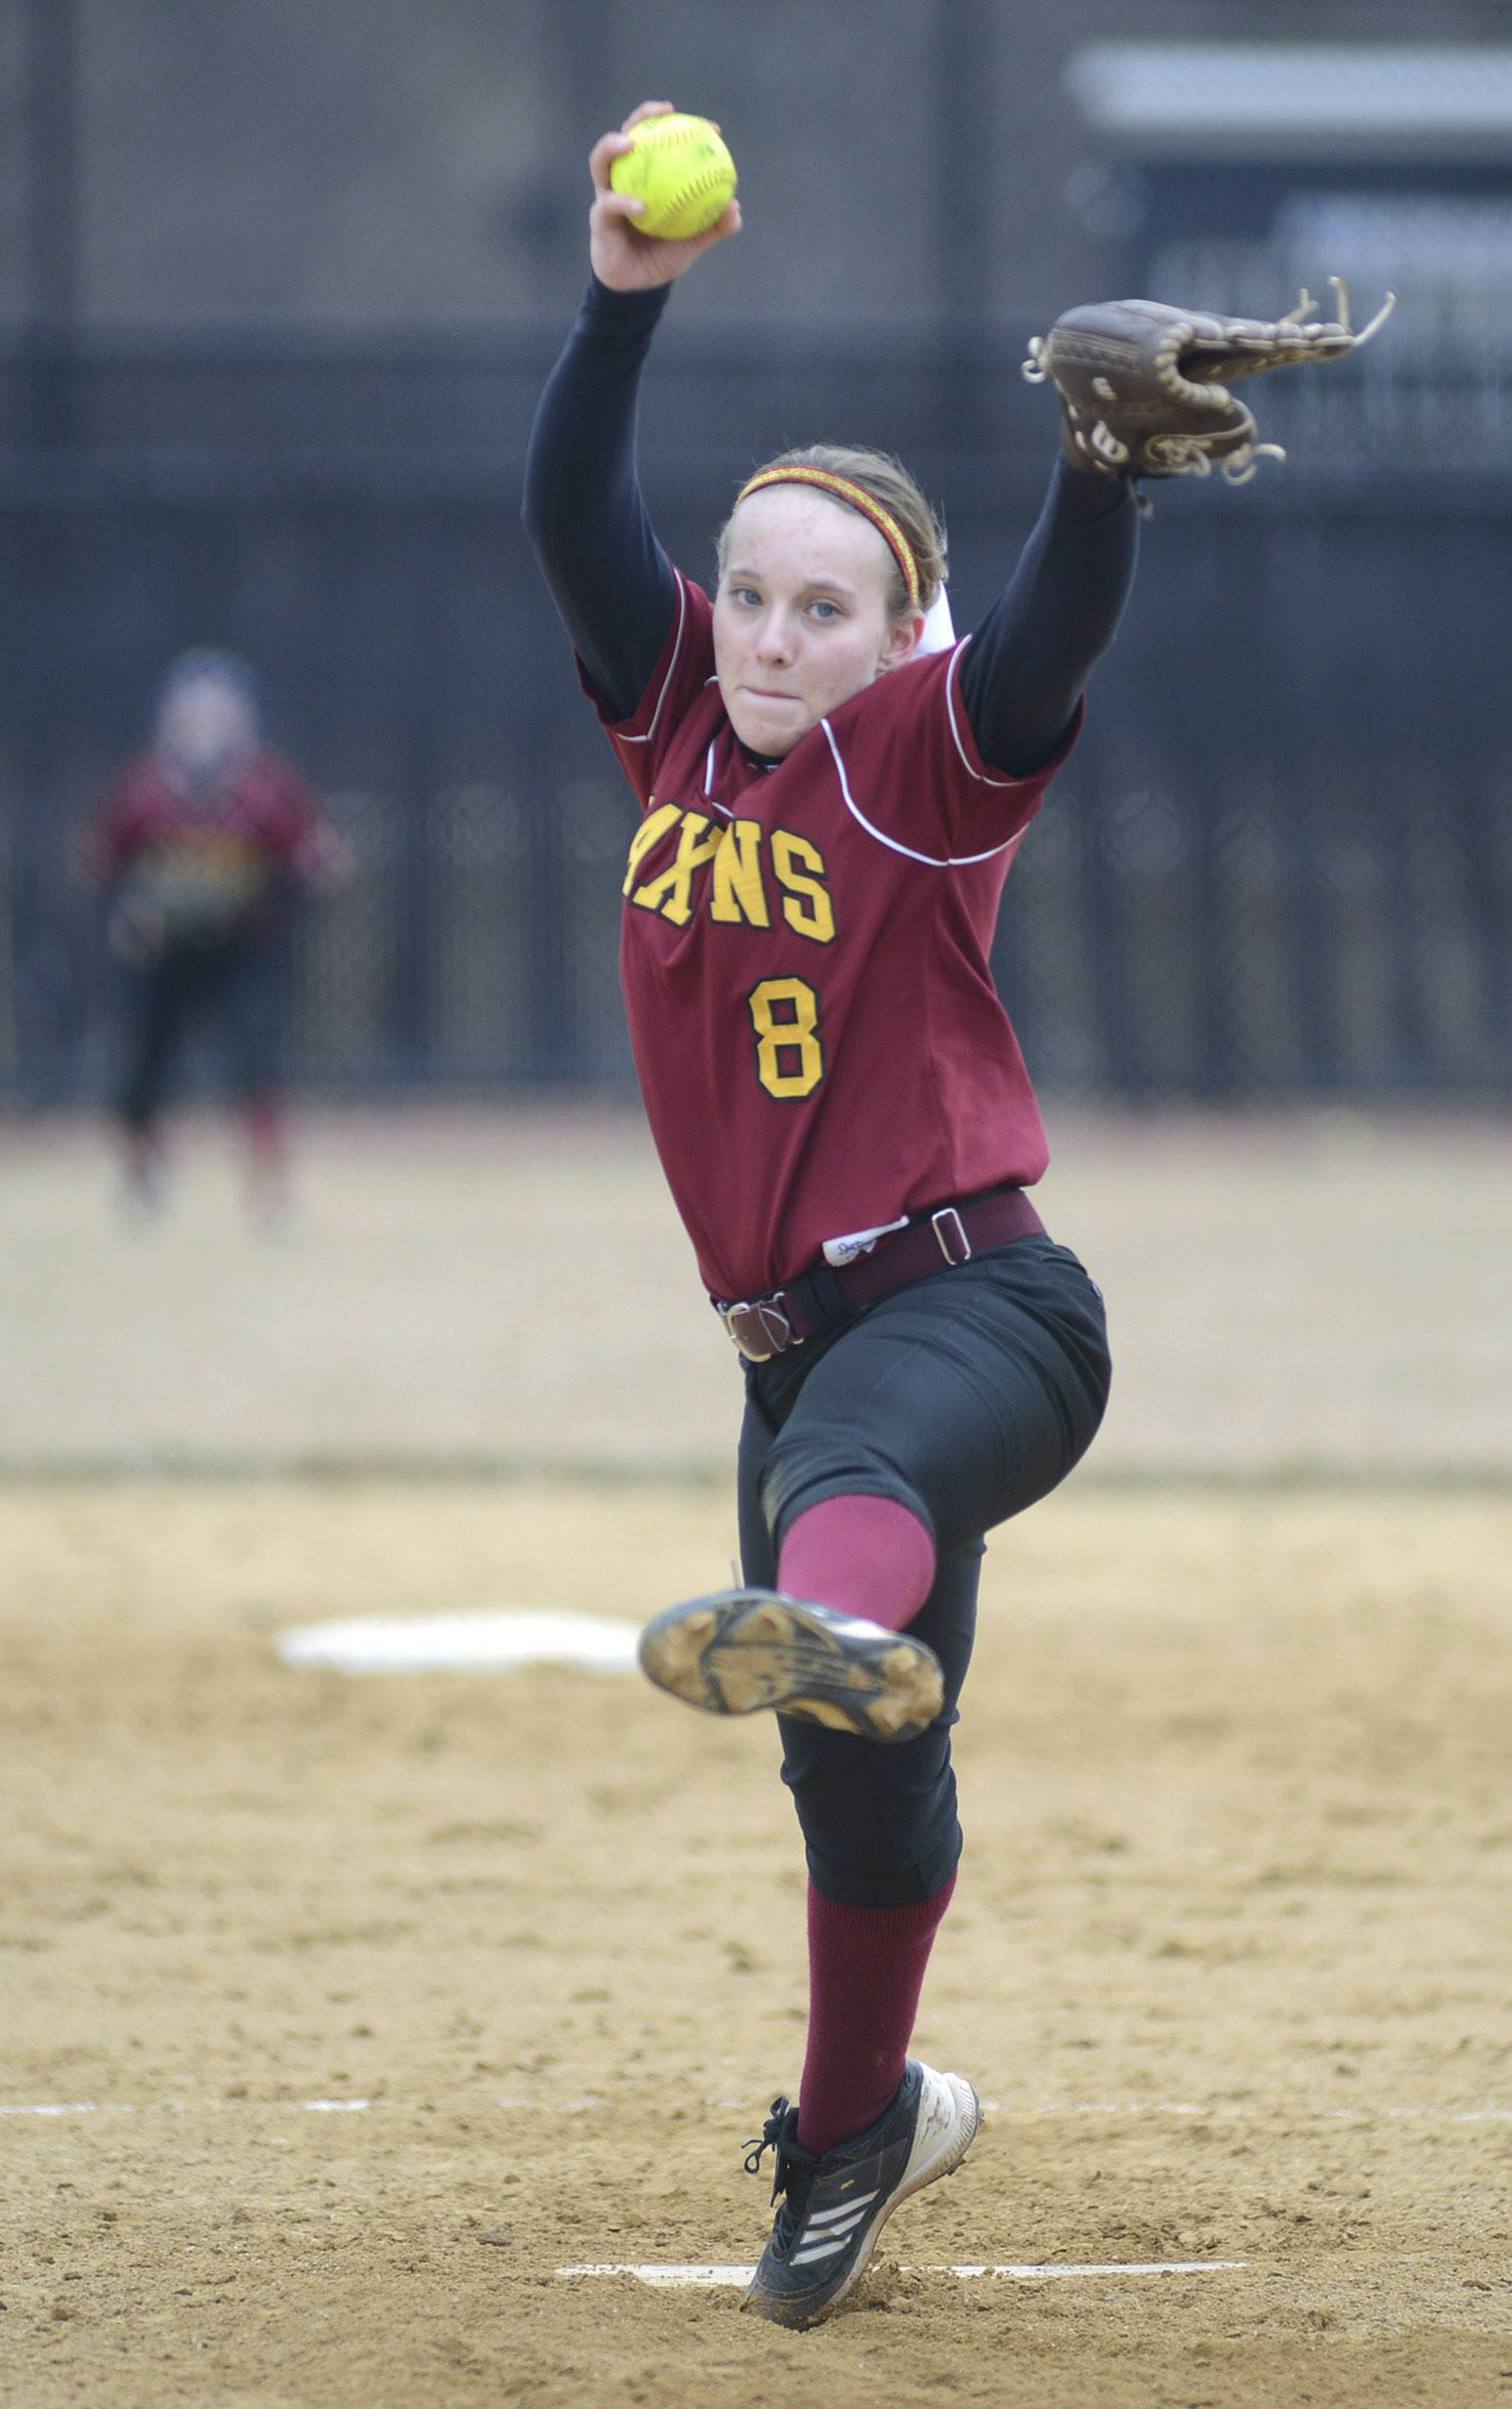 Laura Stoecker/lstoecker@dailyherald.comSchaumburg's Roxanne Kakareka pitches in the game vs. St. Charles North on Wednesday, April 2.